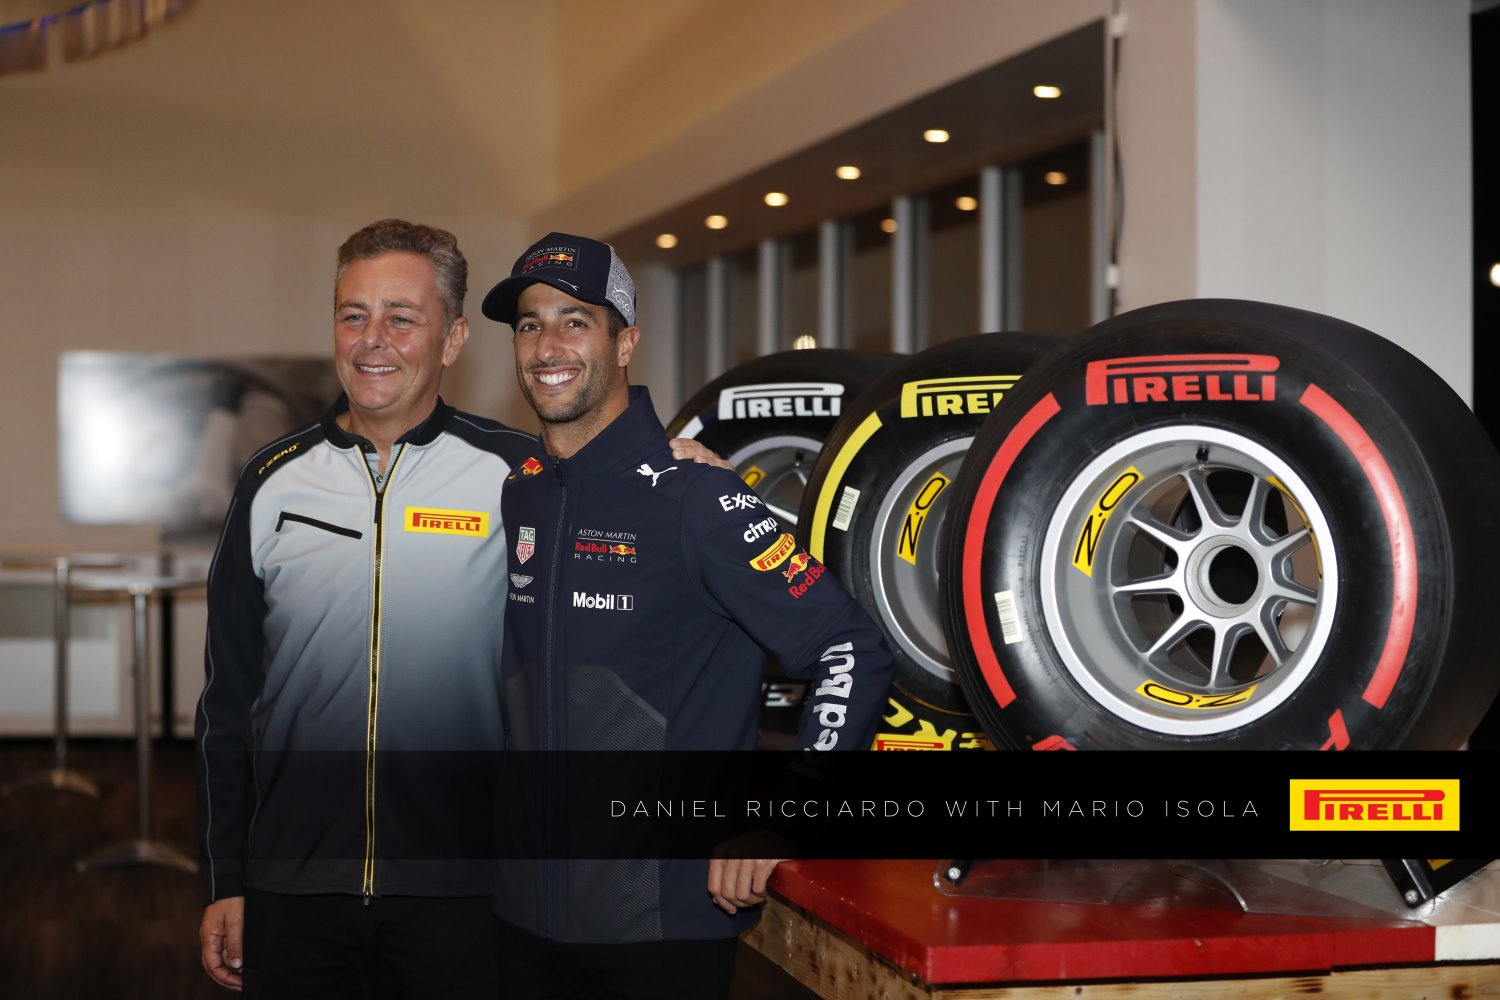 Brawn wants Pirelli to do more to improve tires. Haven't they done enough?